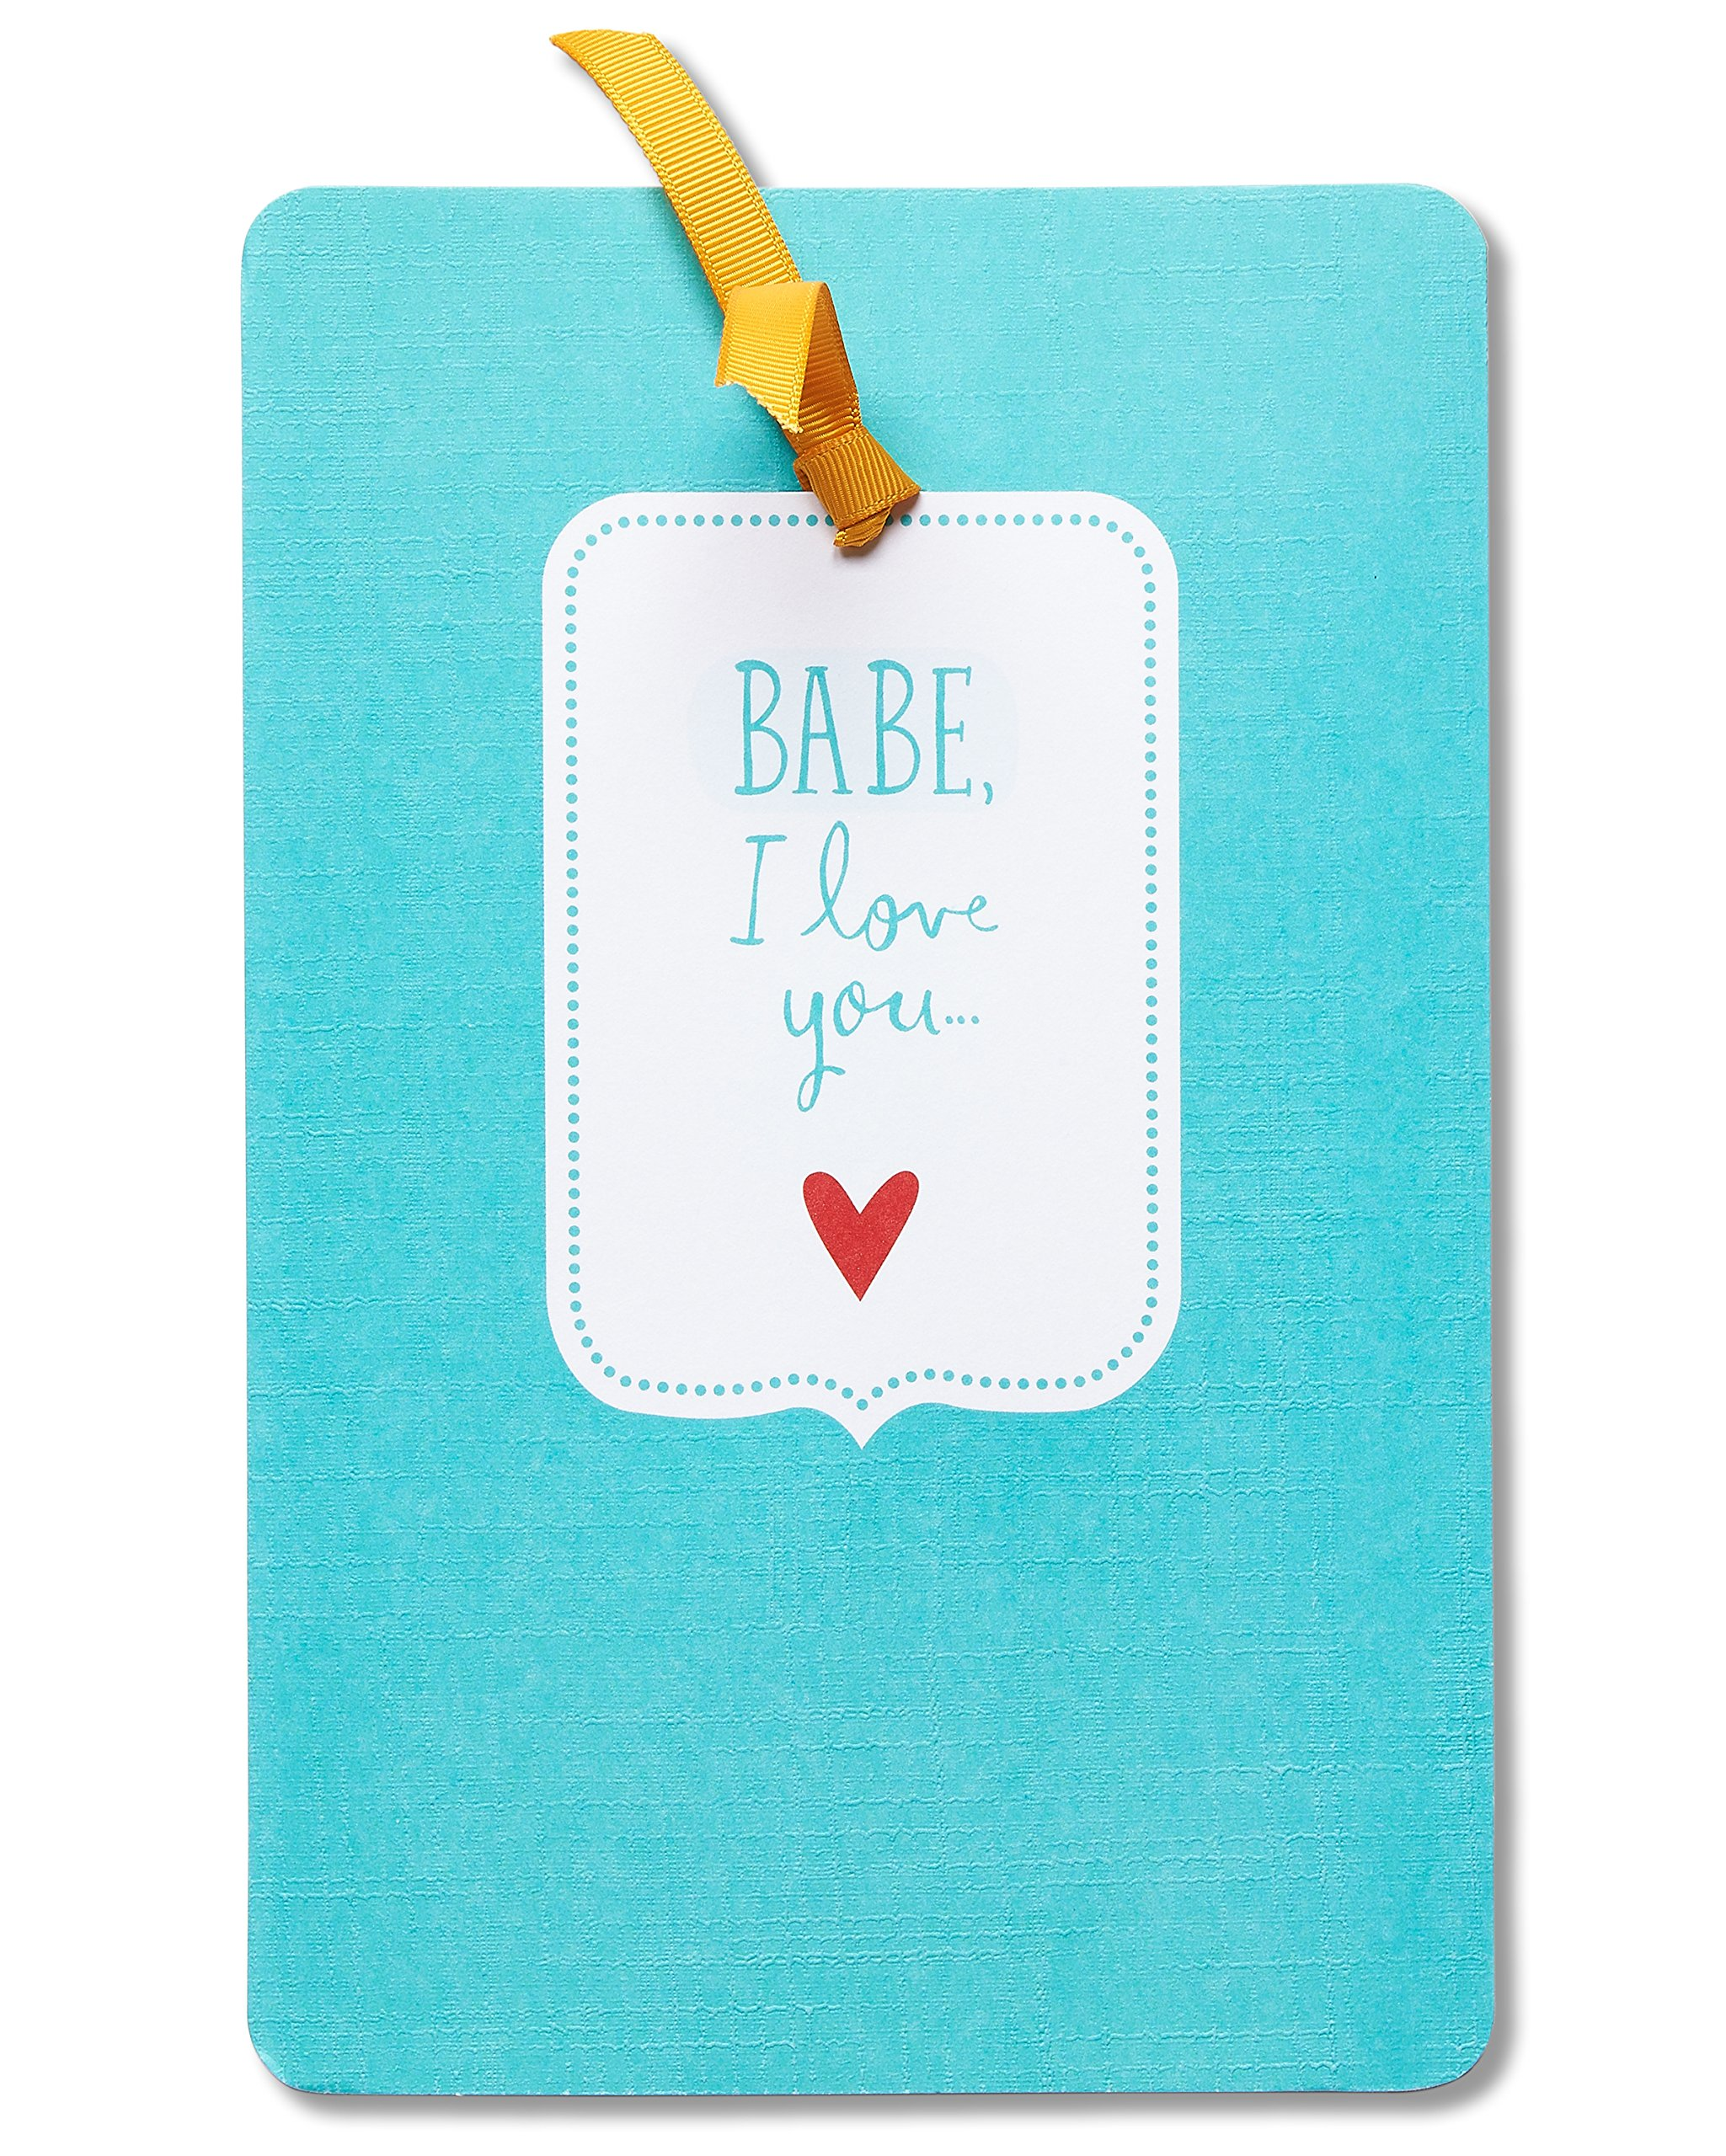 American Greetings Babe Mother's Day Card for Wife with Ribbon